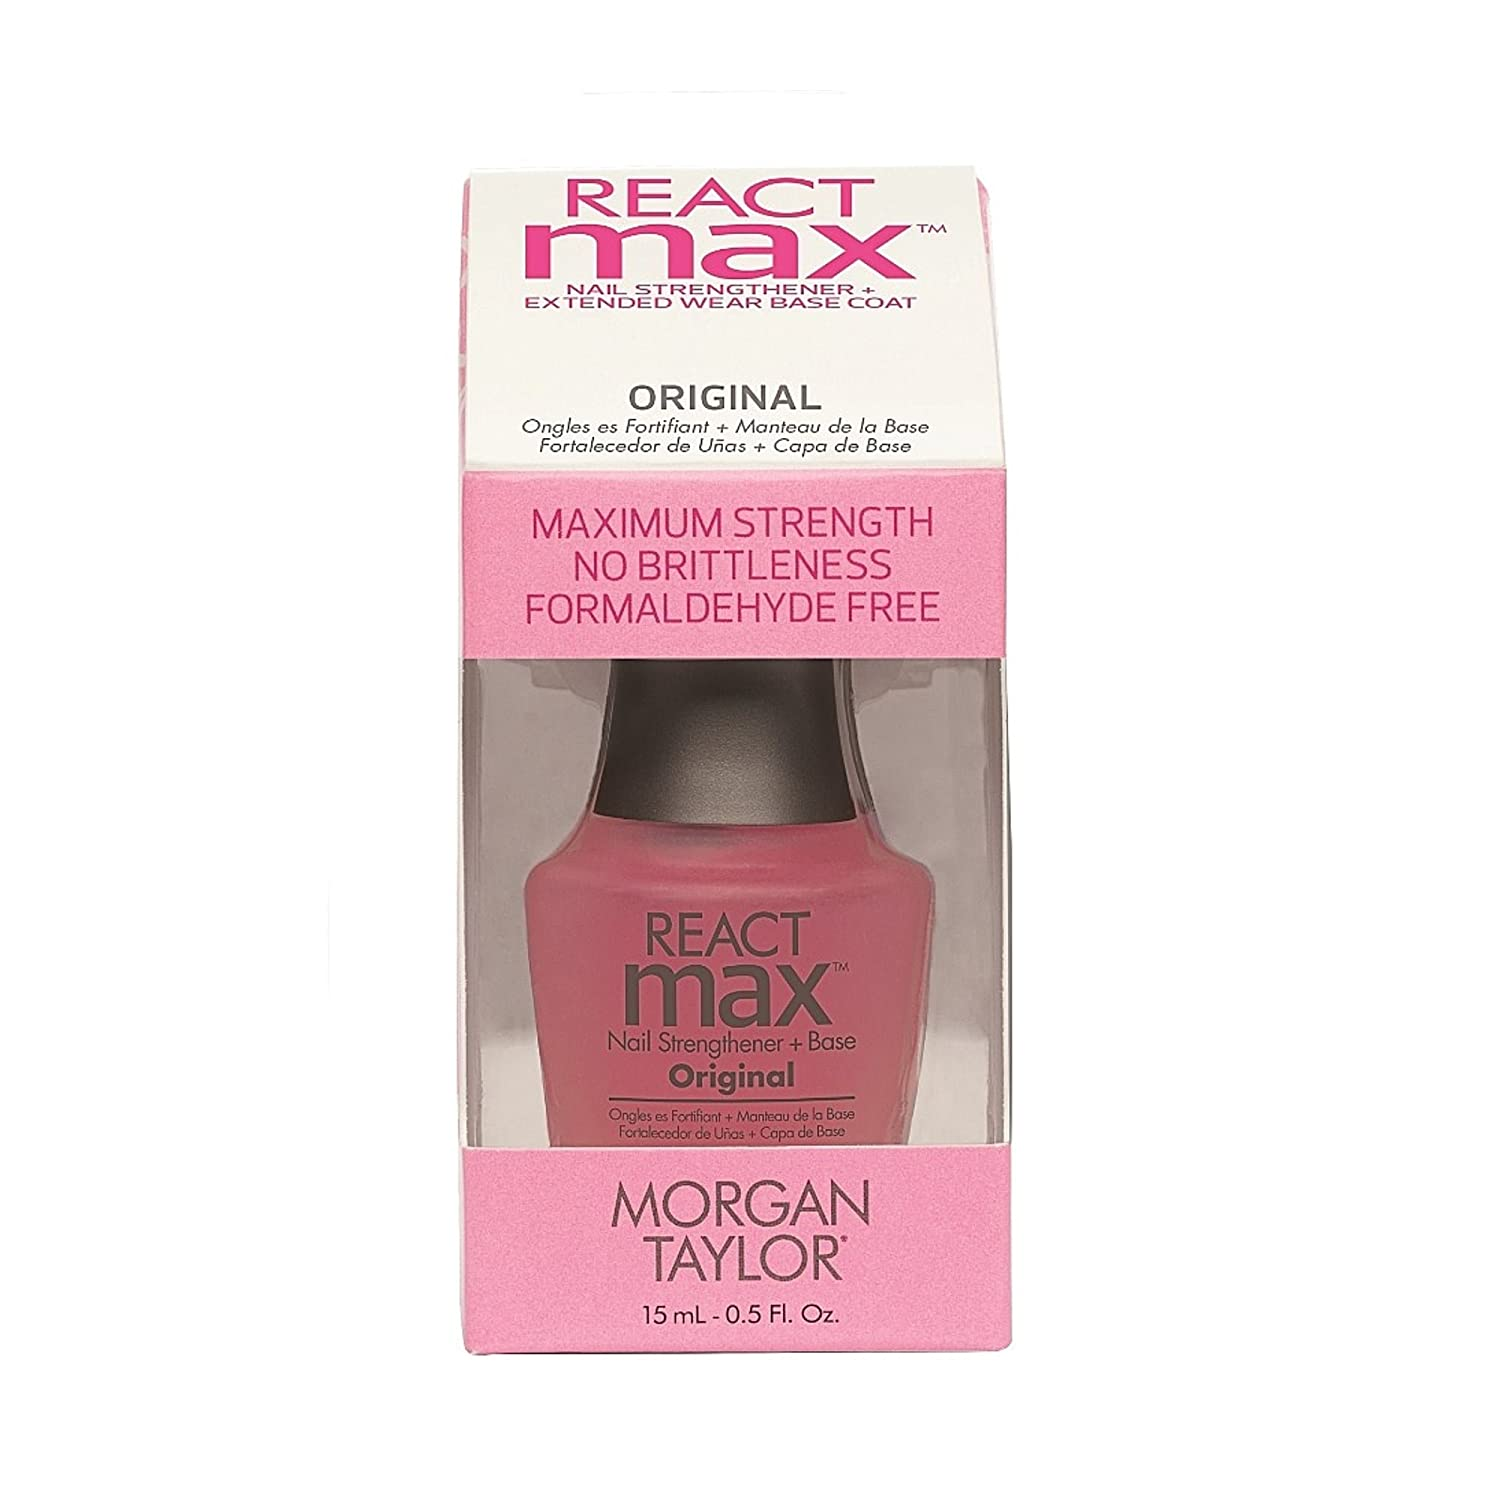 Morgan Taylor reactmax original nail strengthener + extended wear base coat, 15ml